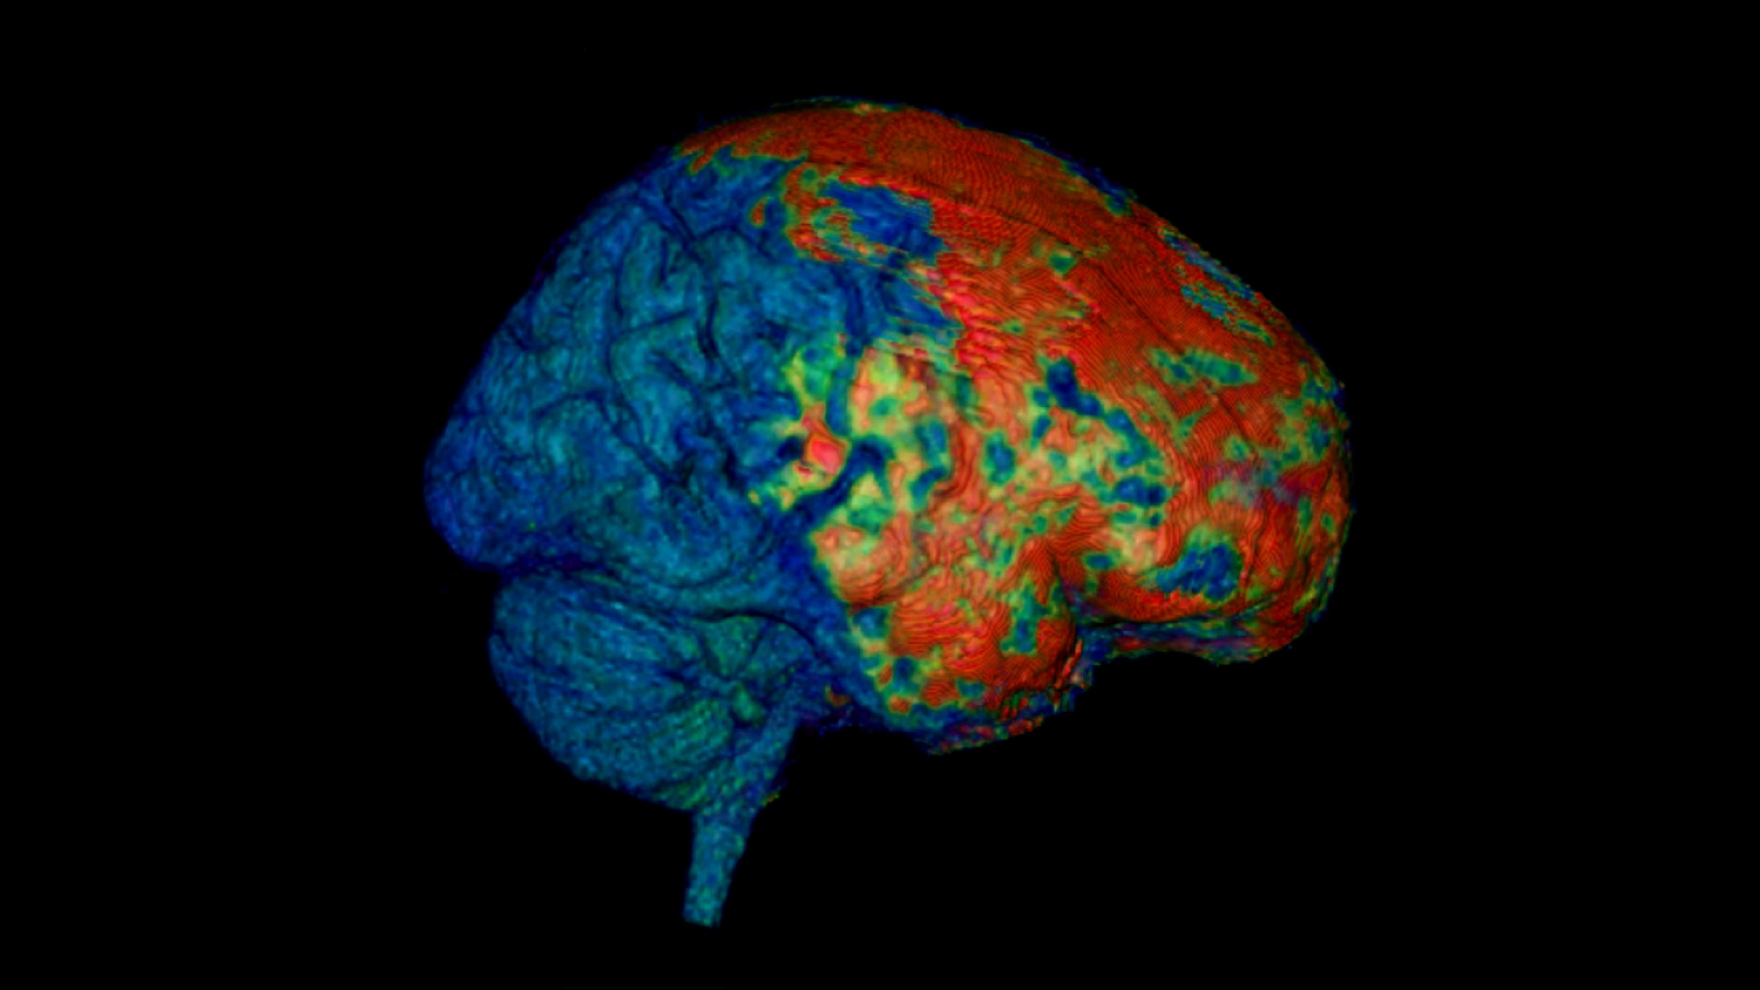 an MRI scan of a brain with a concussion